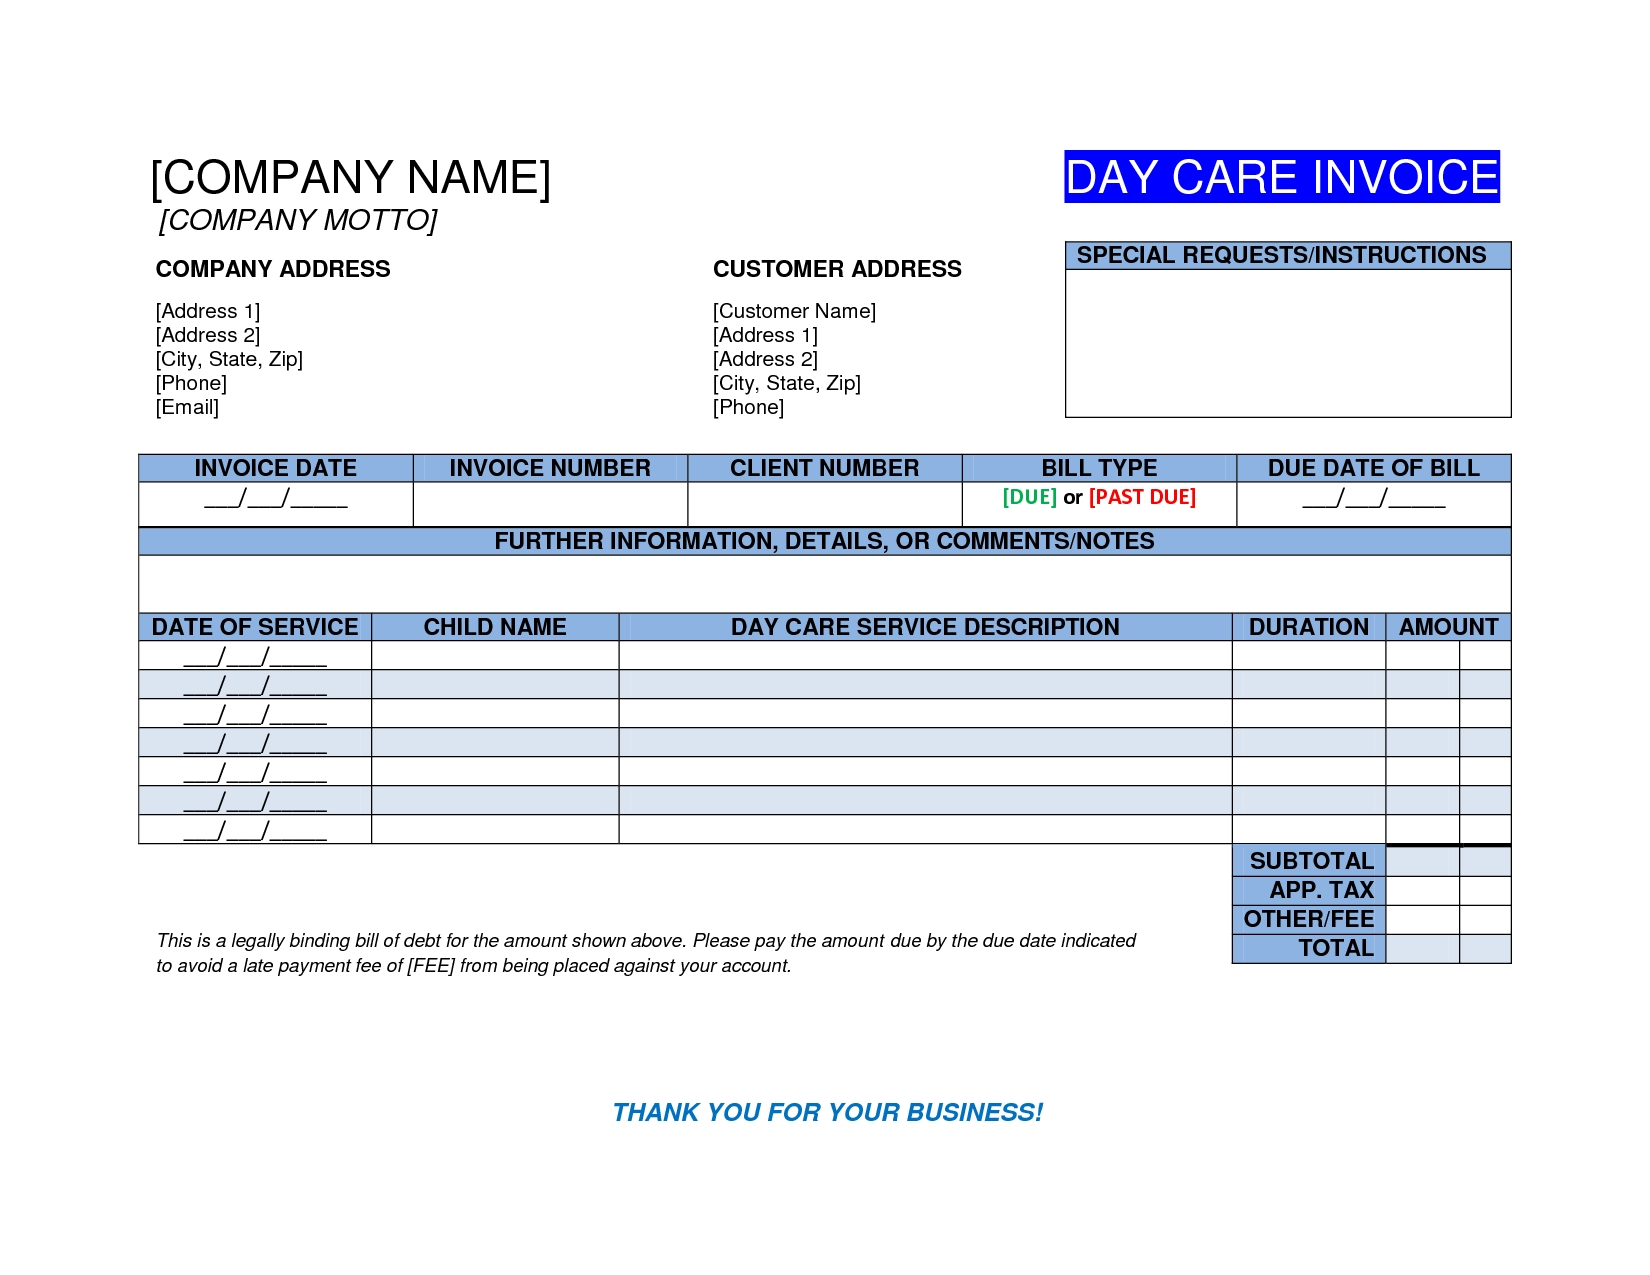 daycare invoice template free invoice templates image gallery  daycare invoice template